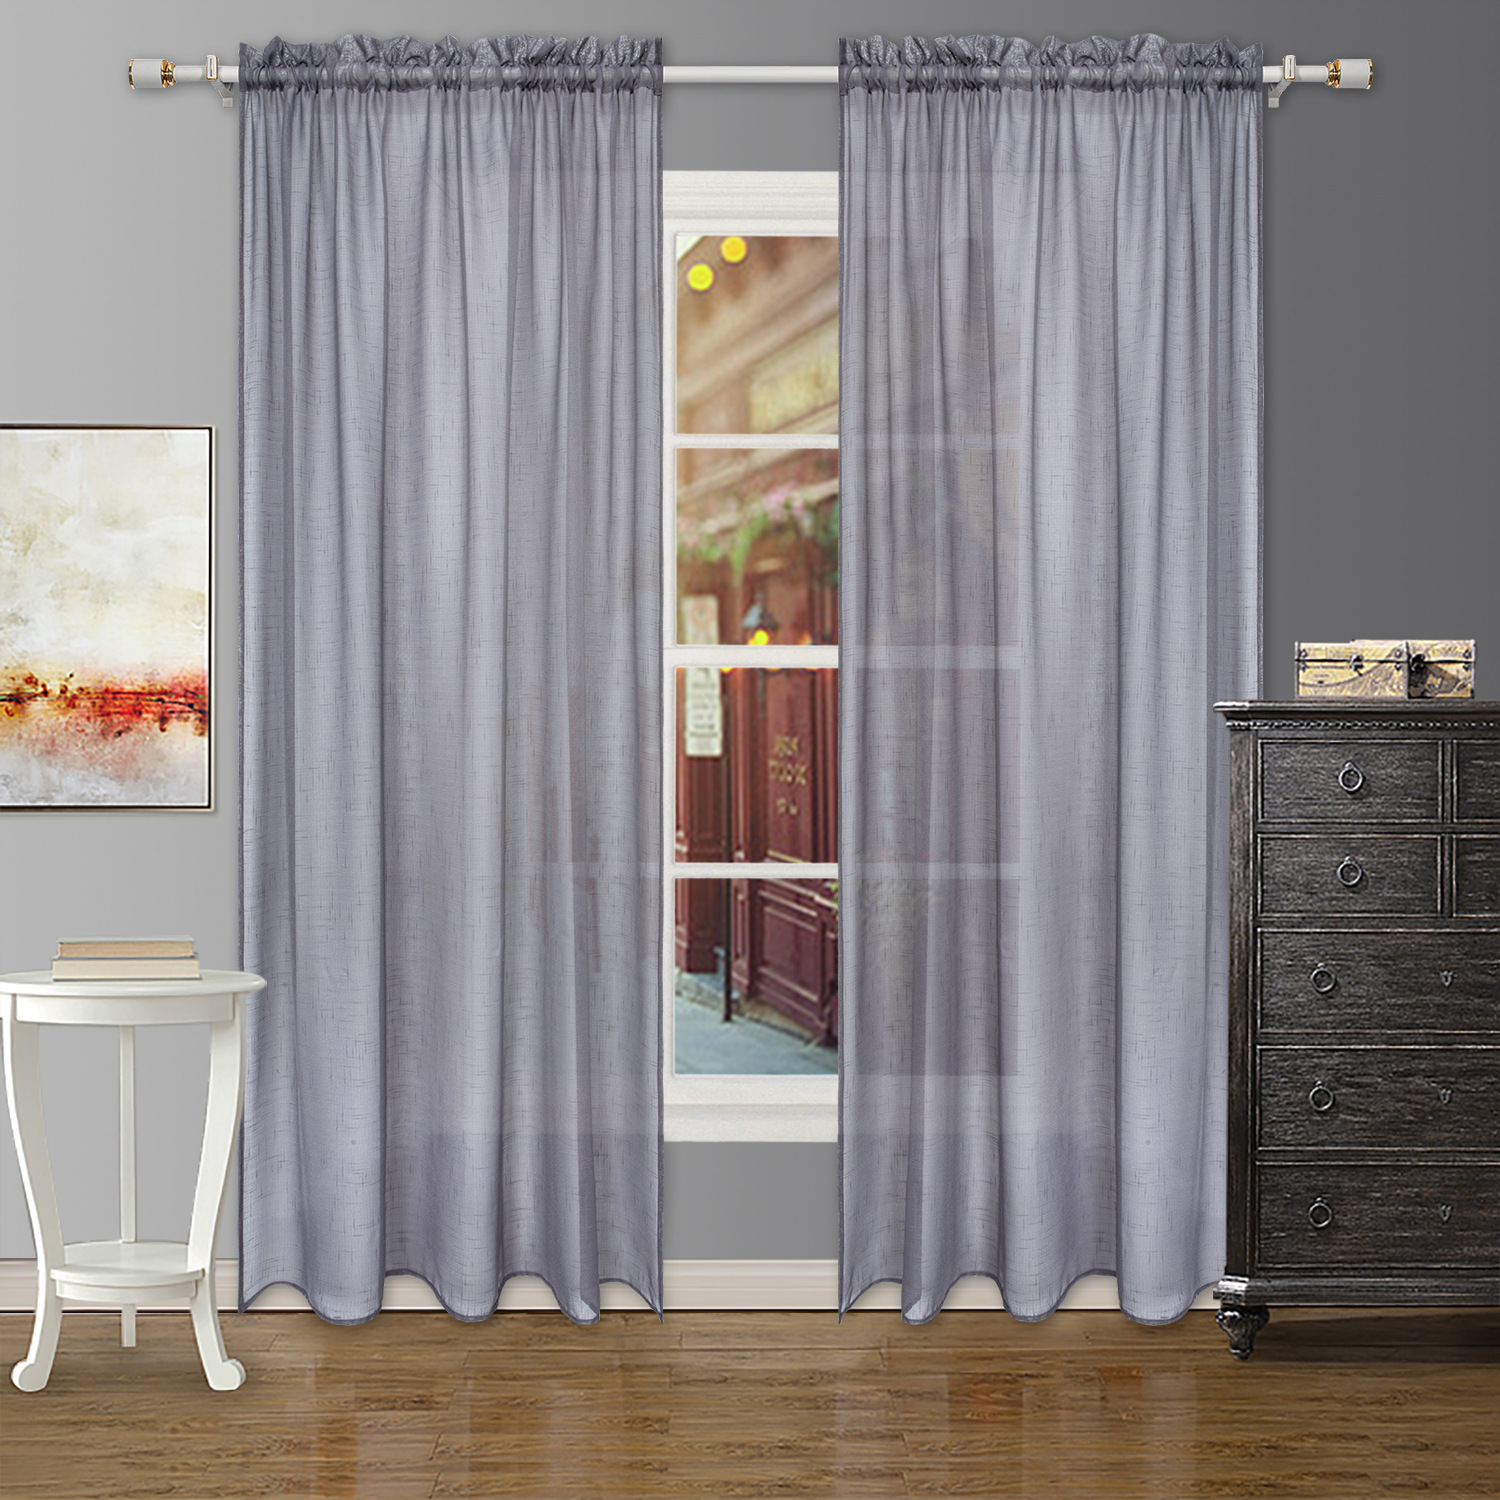 fashion hotel bedroom living room finished polyester gauze plain net curtain buy five compartments and one curtain full polyester material plain